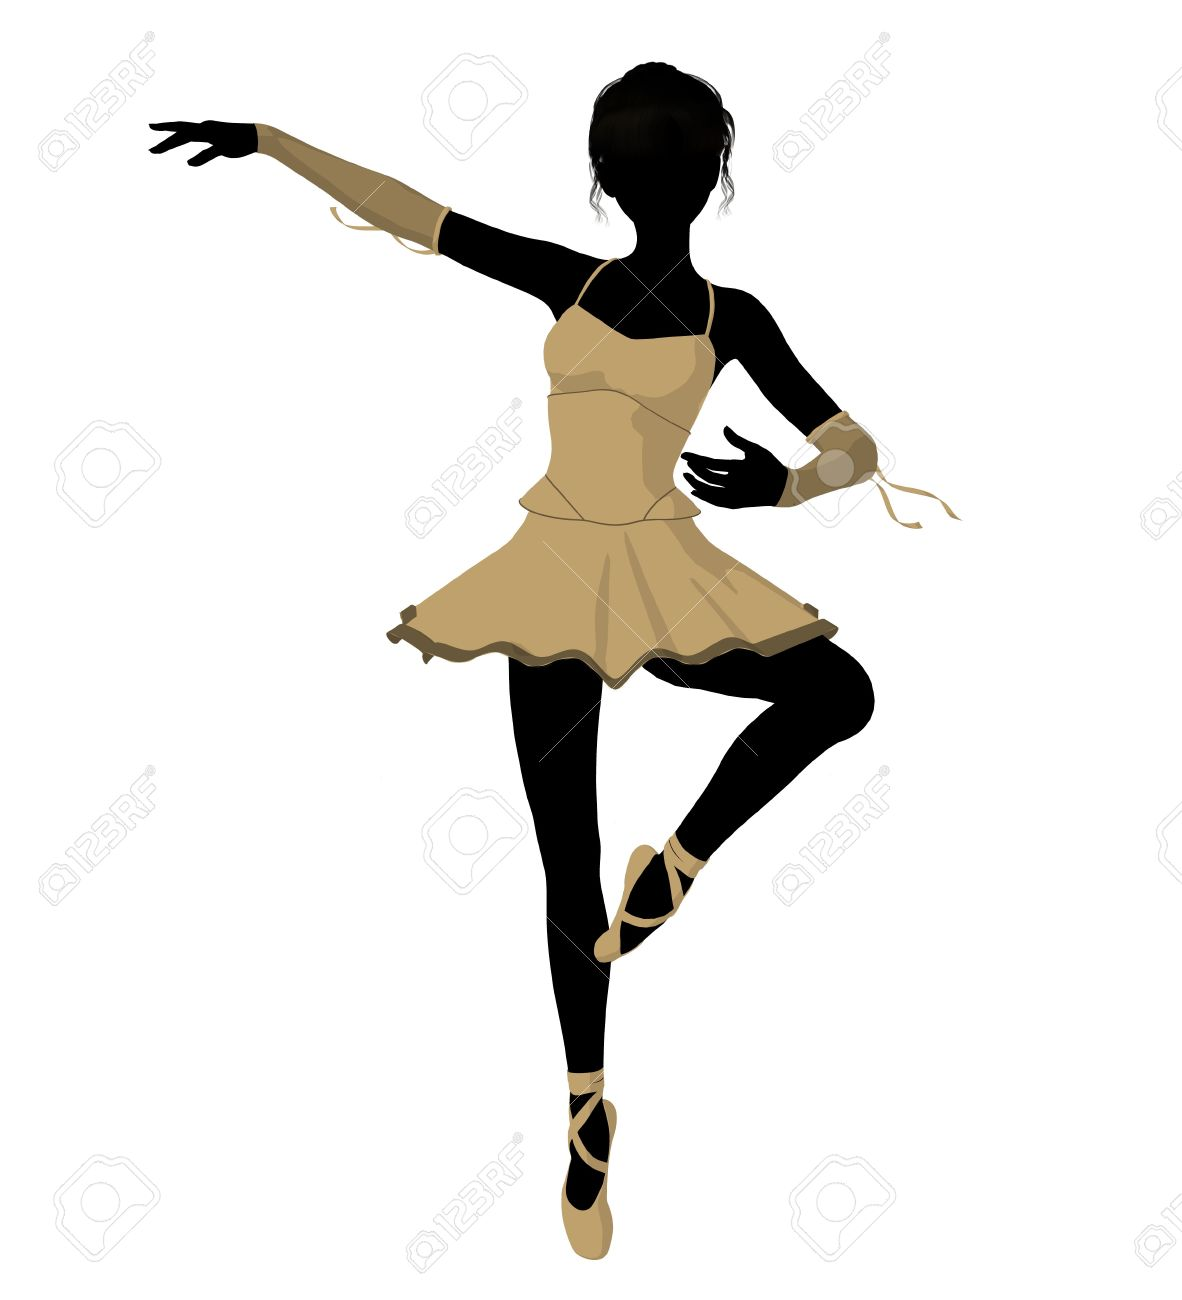 Ballerina Silhouette On A White Background Stock Photo Picture And Royalty Free Image Image 7730736